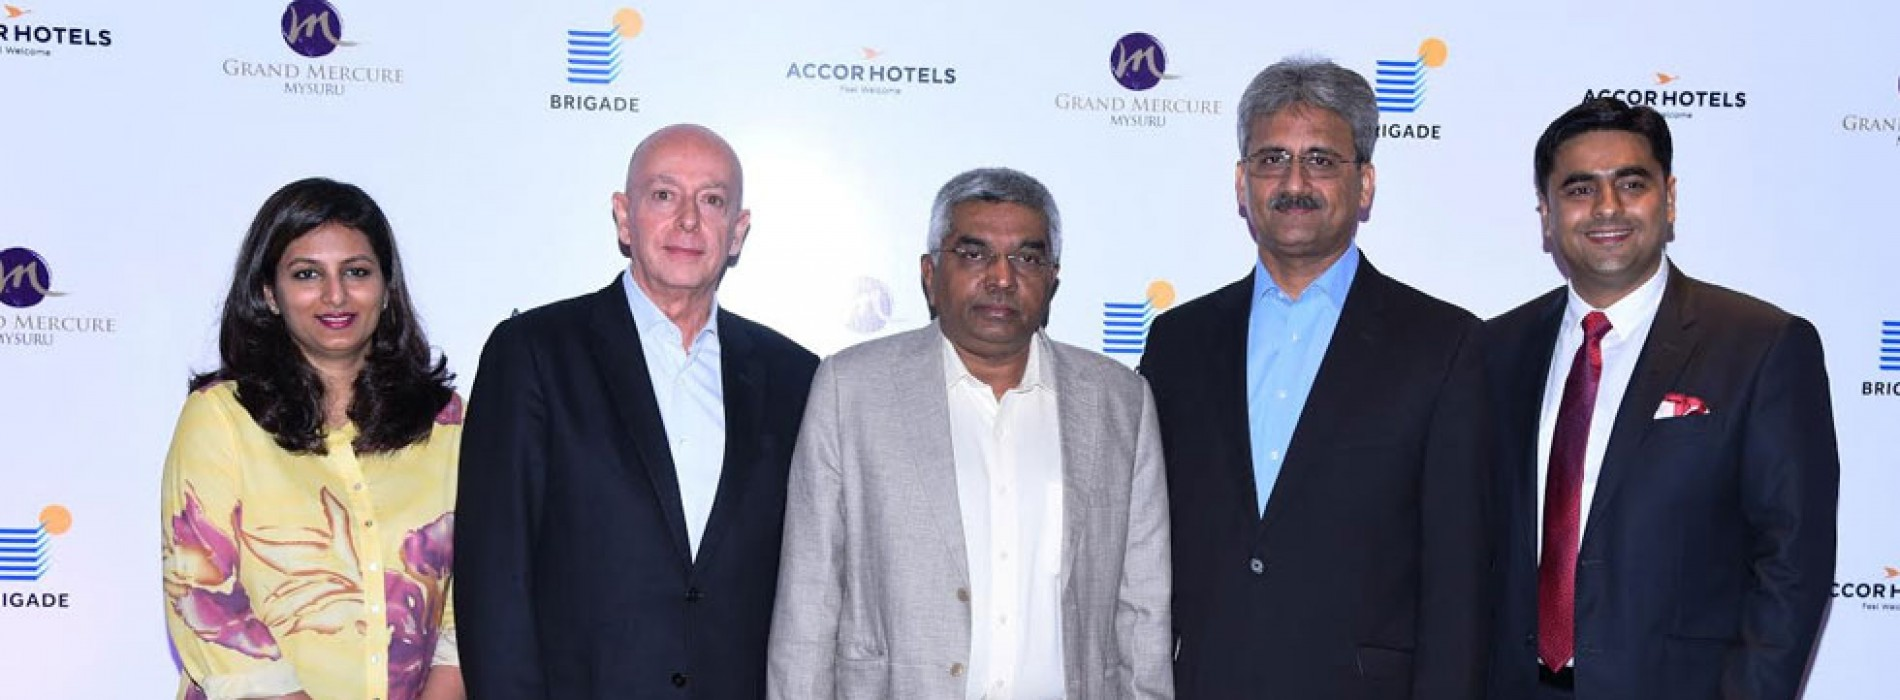 AccorHotels launches Grand Mercure, Mysuru